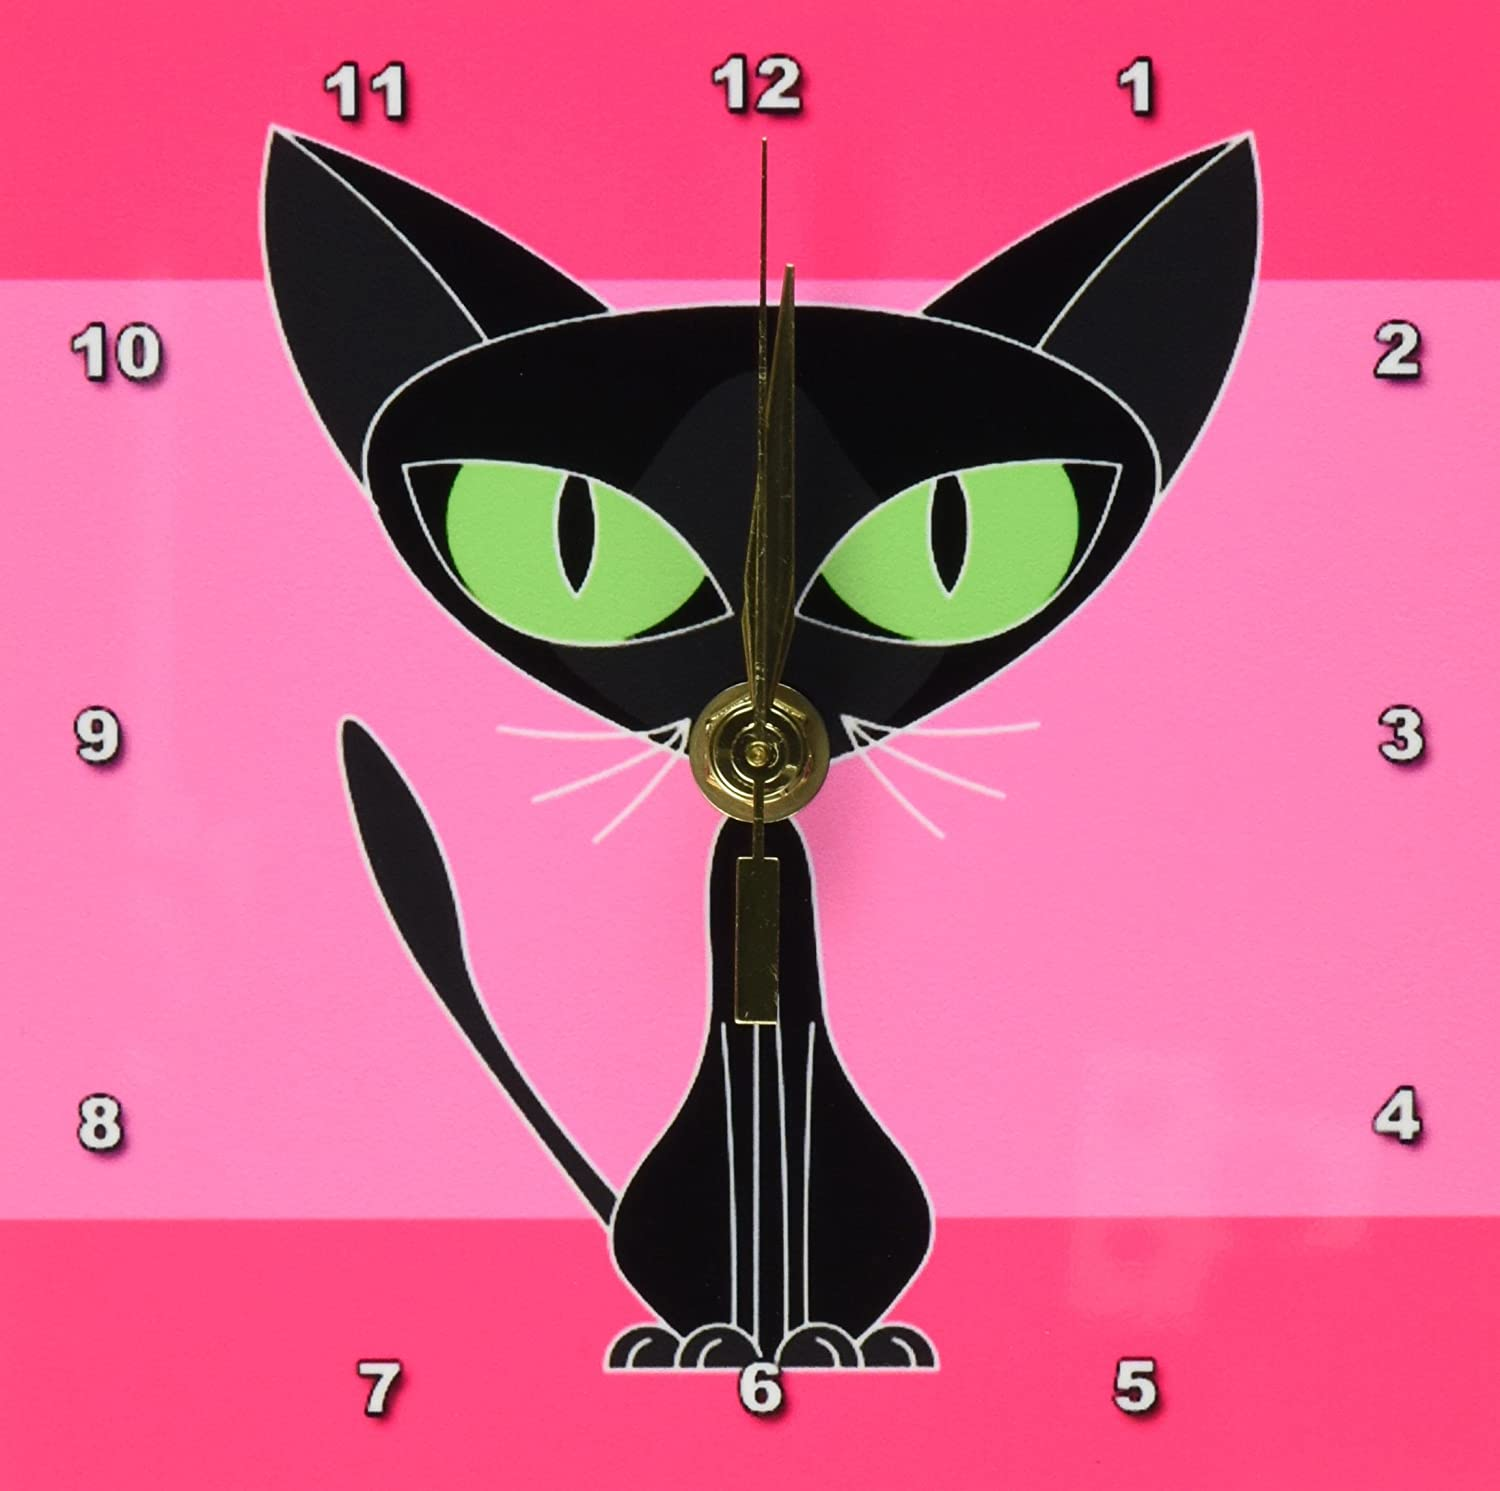 Fancy Feline Black Cat Design In Pink 6 By 6 Inch 3d Rose 3drose Dc 6169 1 Desk Clock Desk Shelf Clocks Home Kitchen